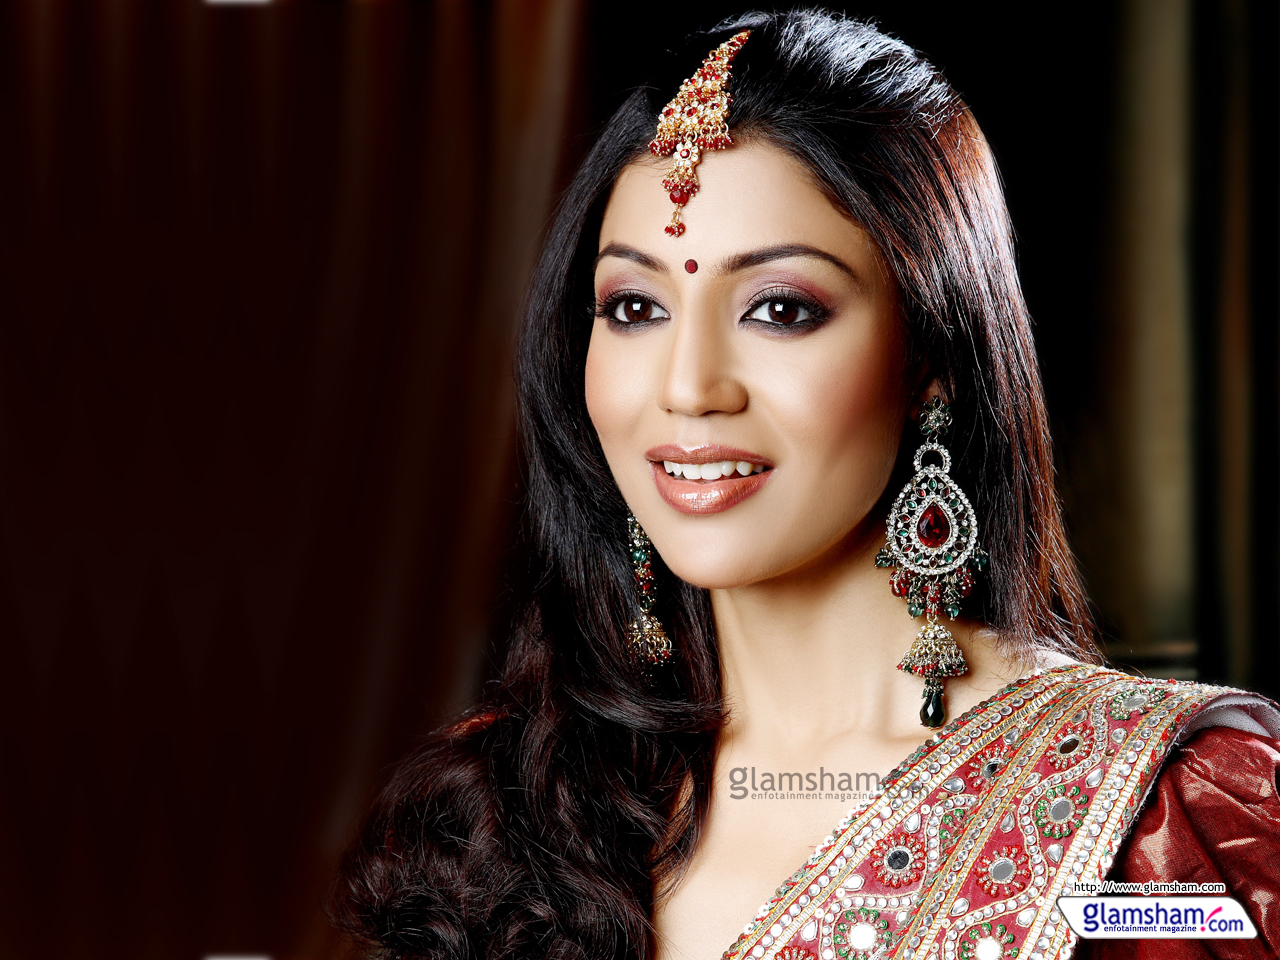 Debina Bonnerjee high resolution image 81760 Glamsham 1280x960